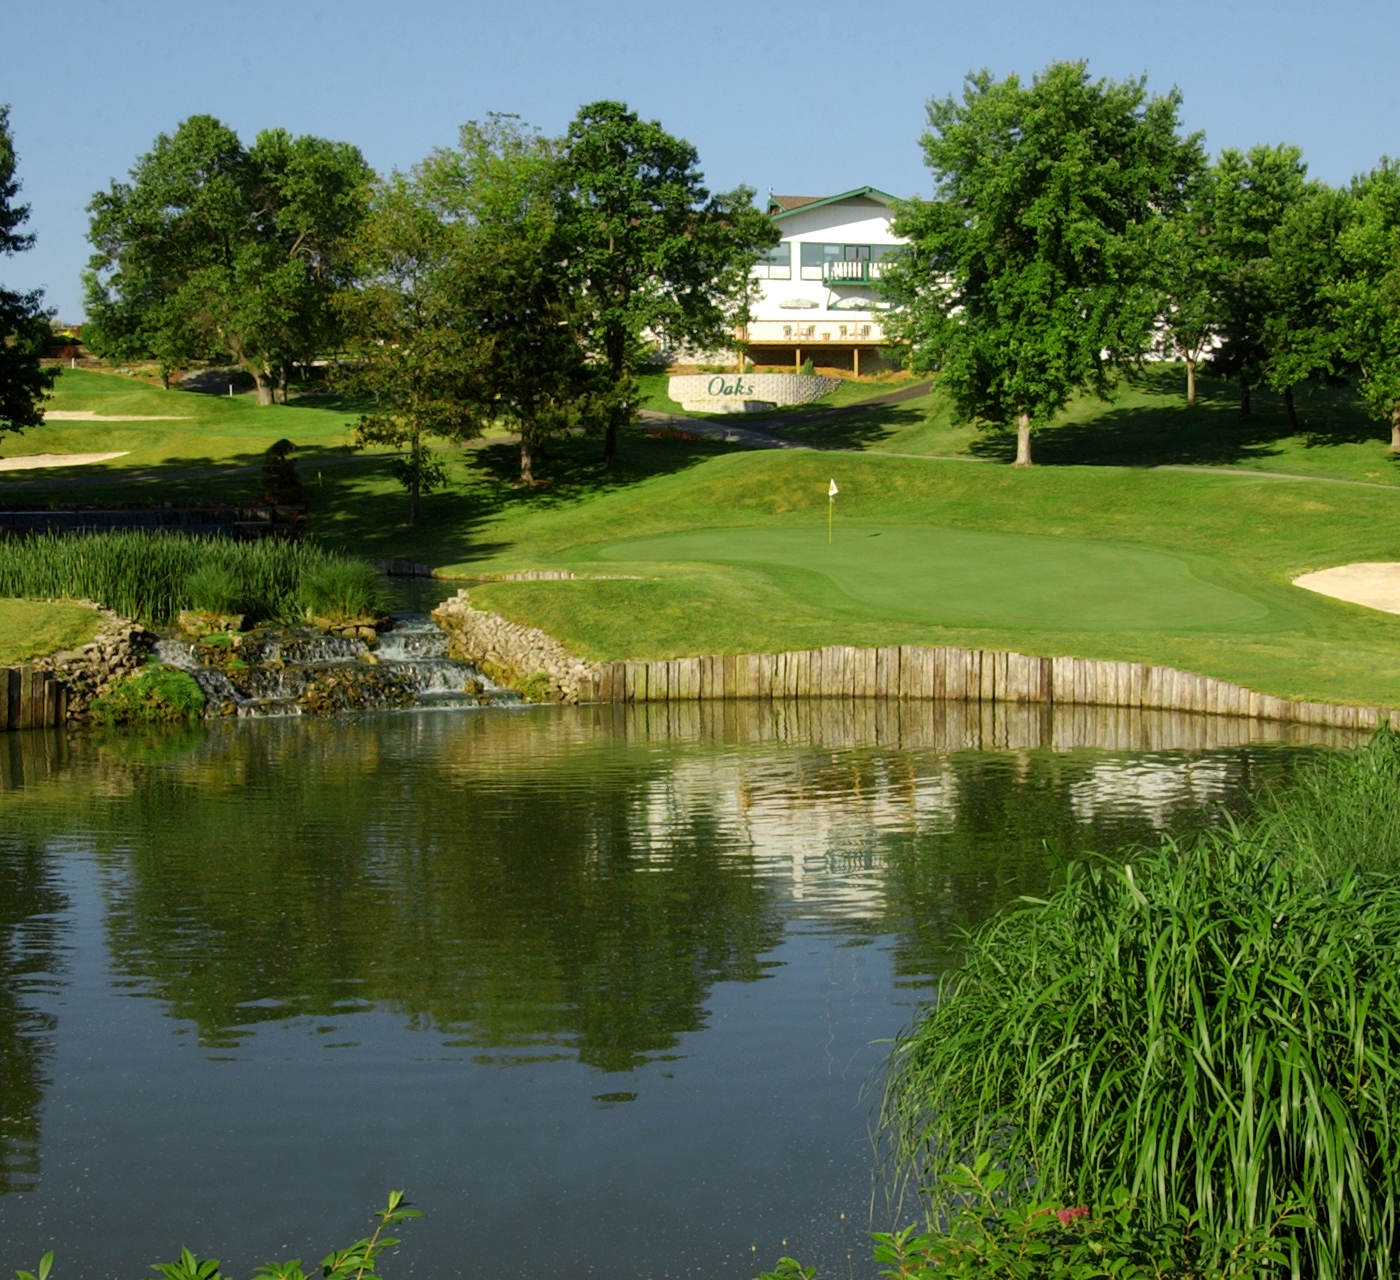 The Oaks Course at TanTarA Resort  Lake of the Ozarks